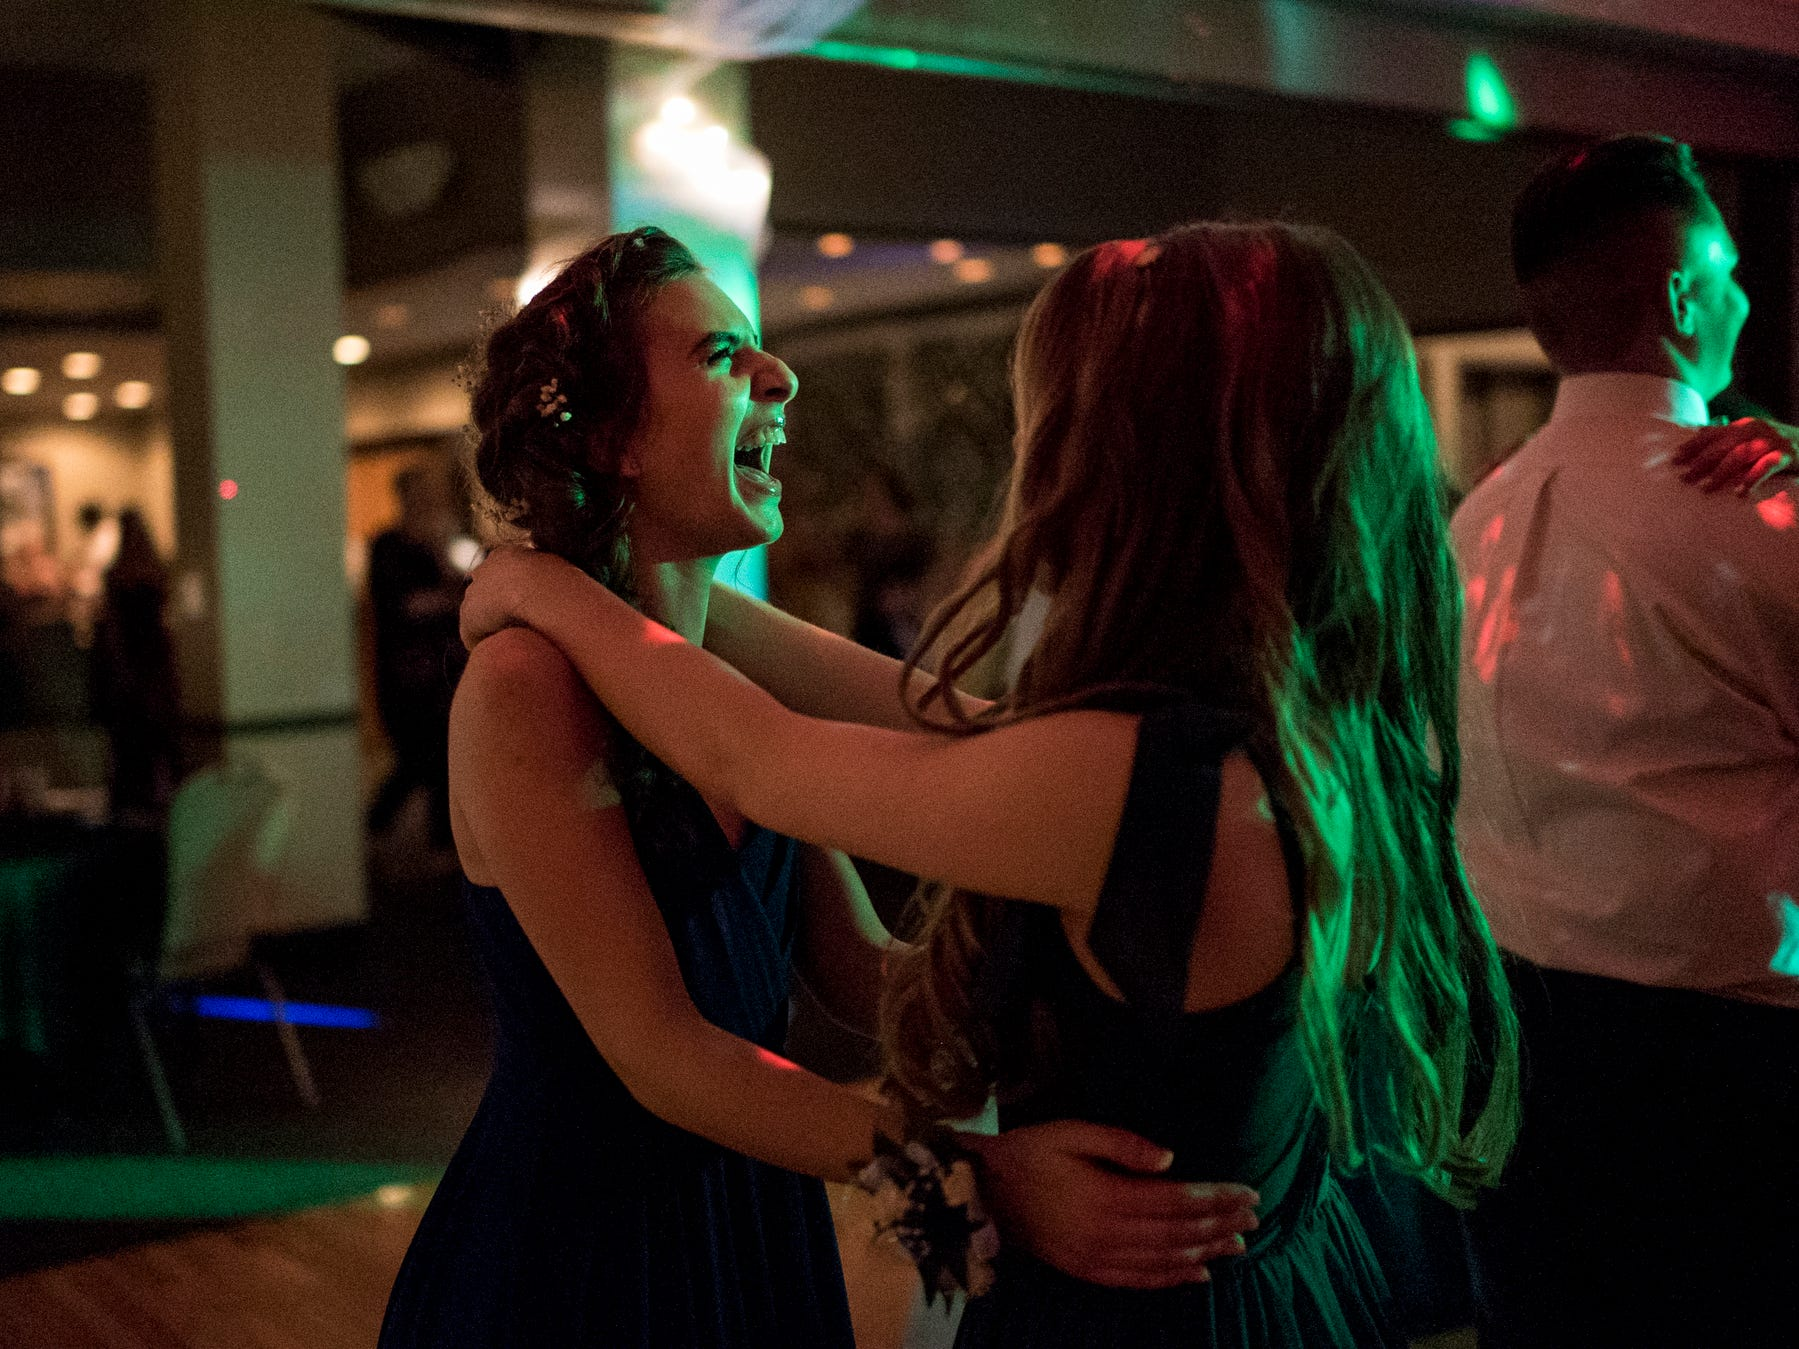 Mater Radovic, left, laughs as she slow dances with Adeleine Halsey, right, during Evansville Day School's prom held at the Hadi Shrine Banquet Hall in downtown Evansville, Ind., Saturday, April 27, 2019.